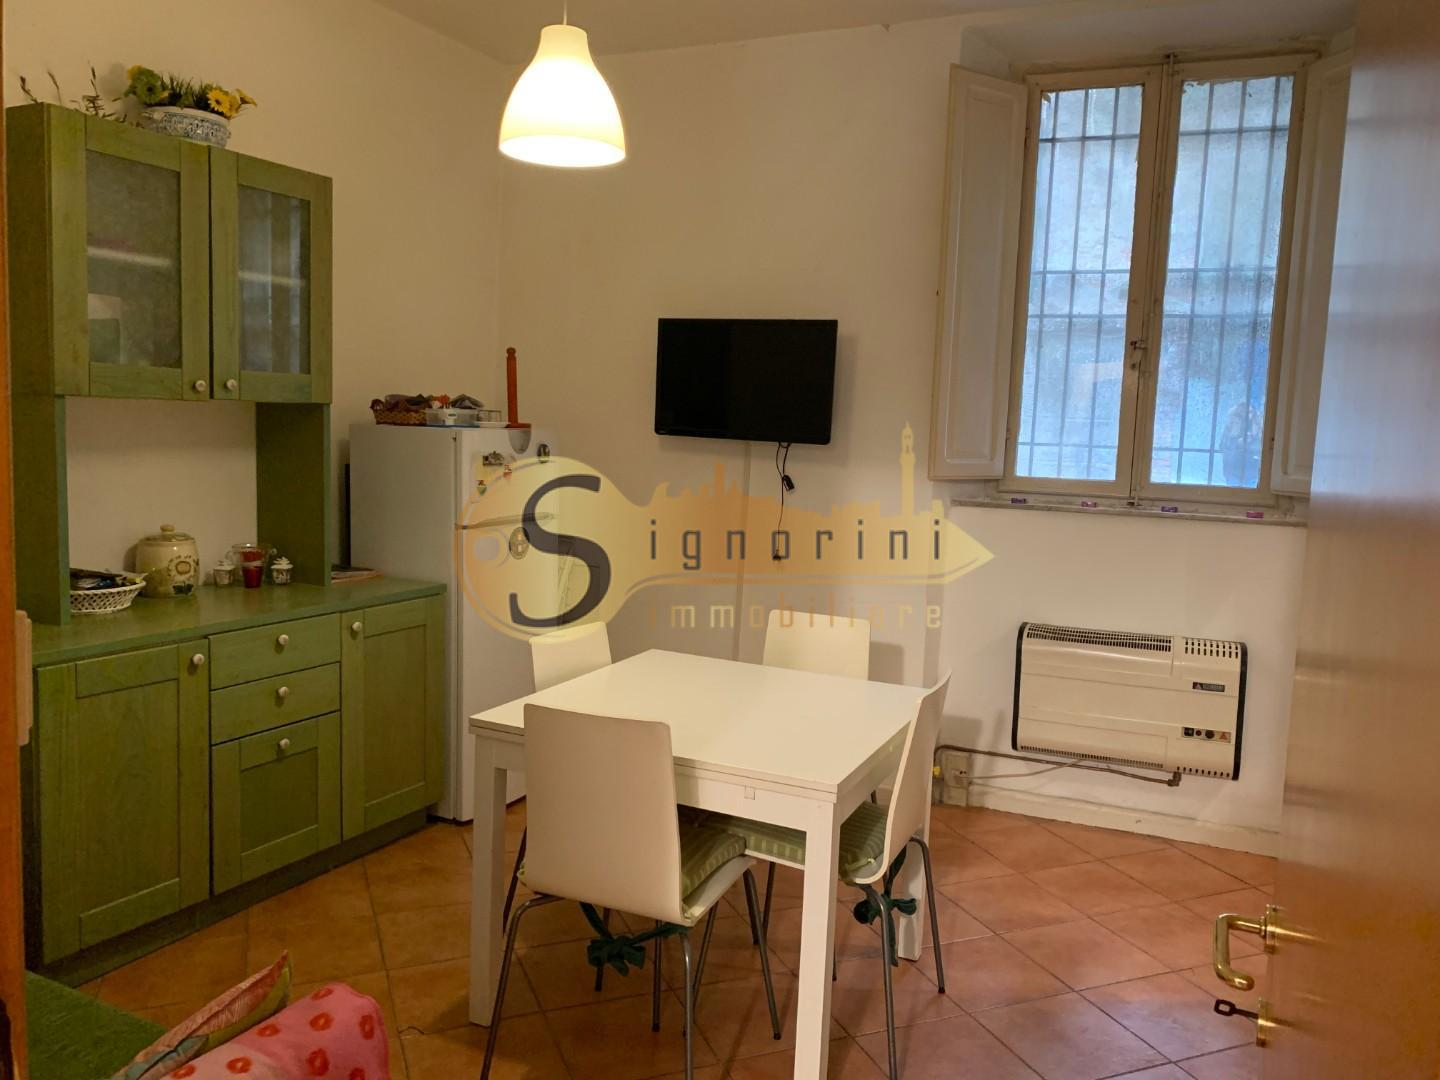 Apartment for rent in Siena